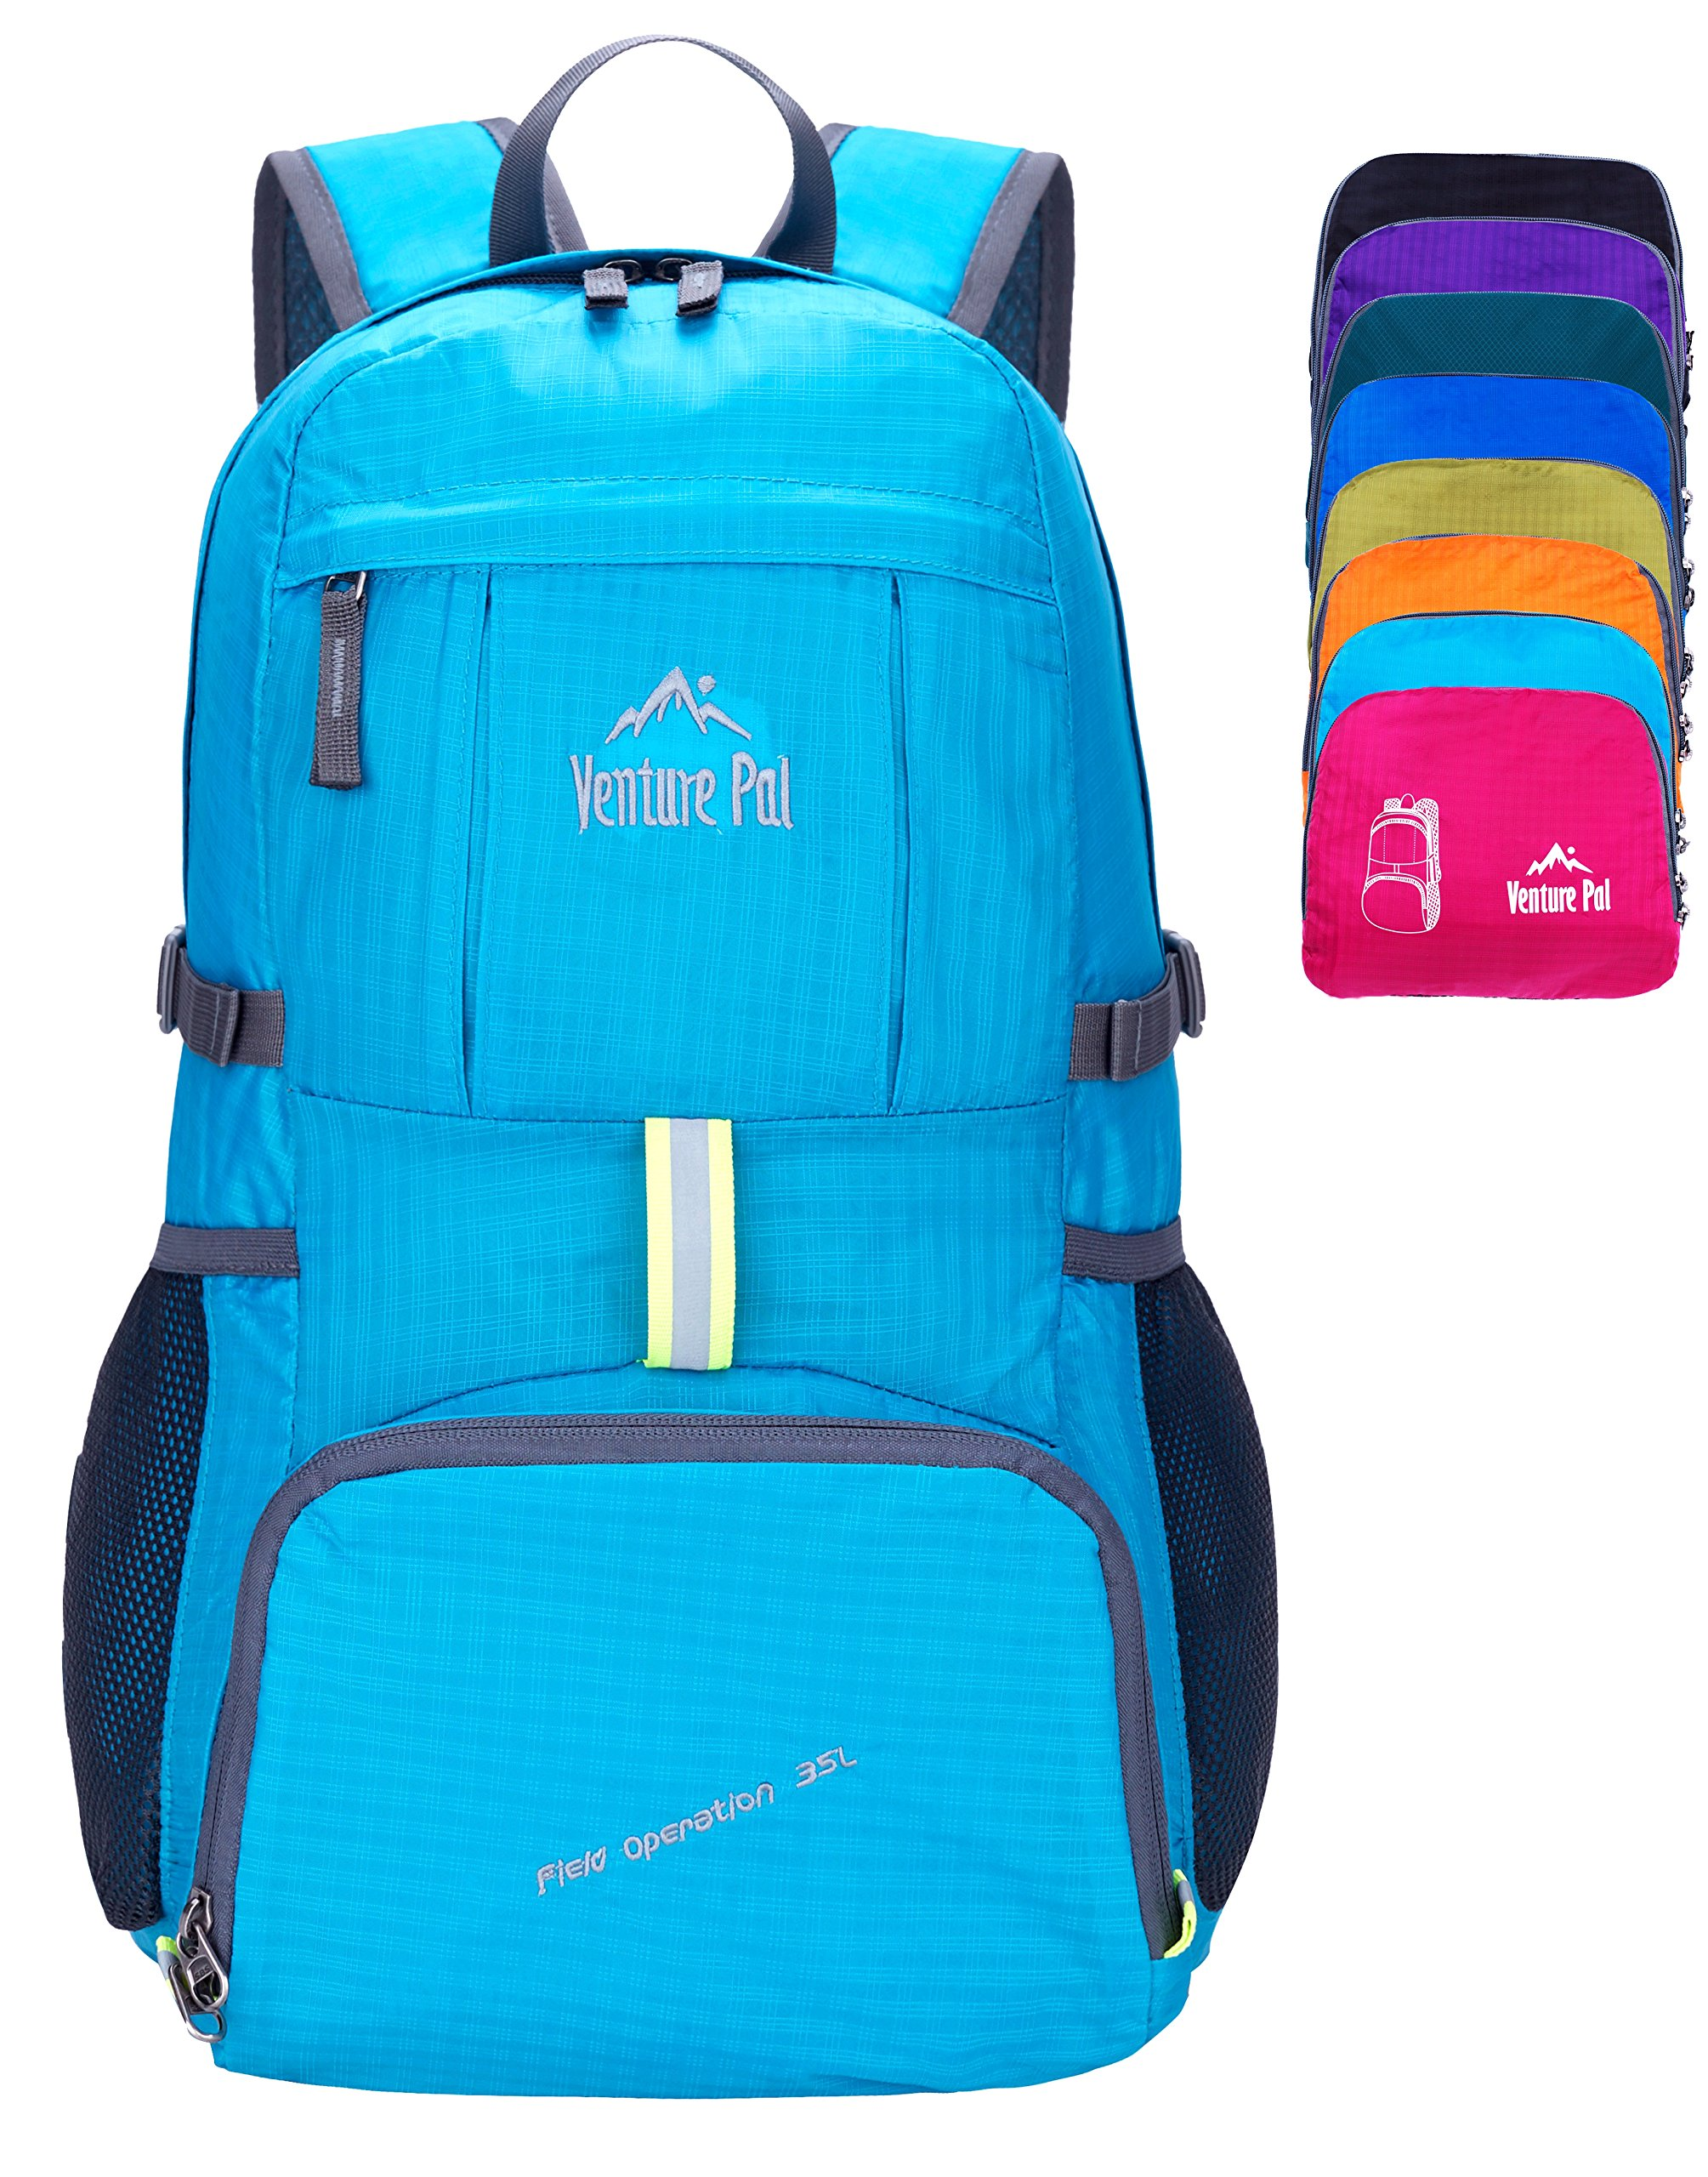 Venture Pal Ultralight Lightweight Packable Foldable Travel Camping Hiking Outdoor Sports Backpack Daypack (Blue) by Venture Pal